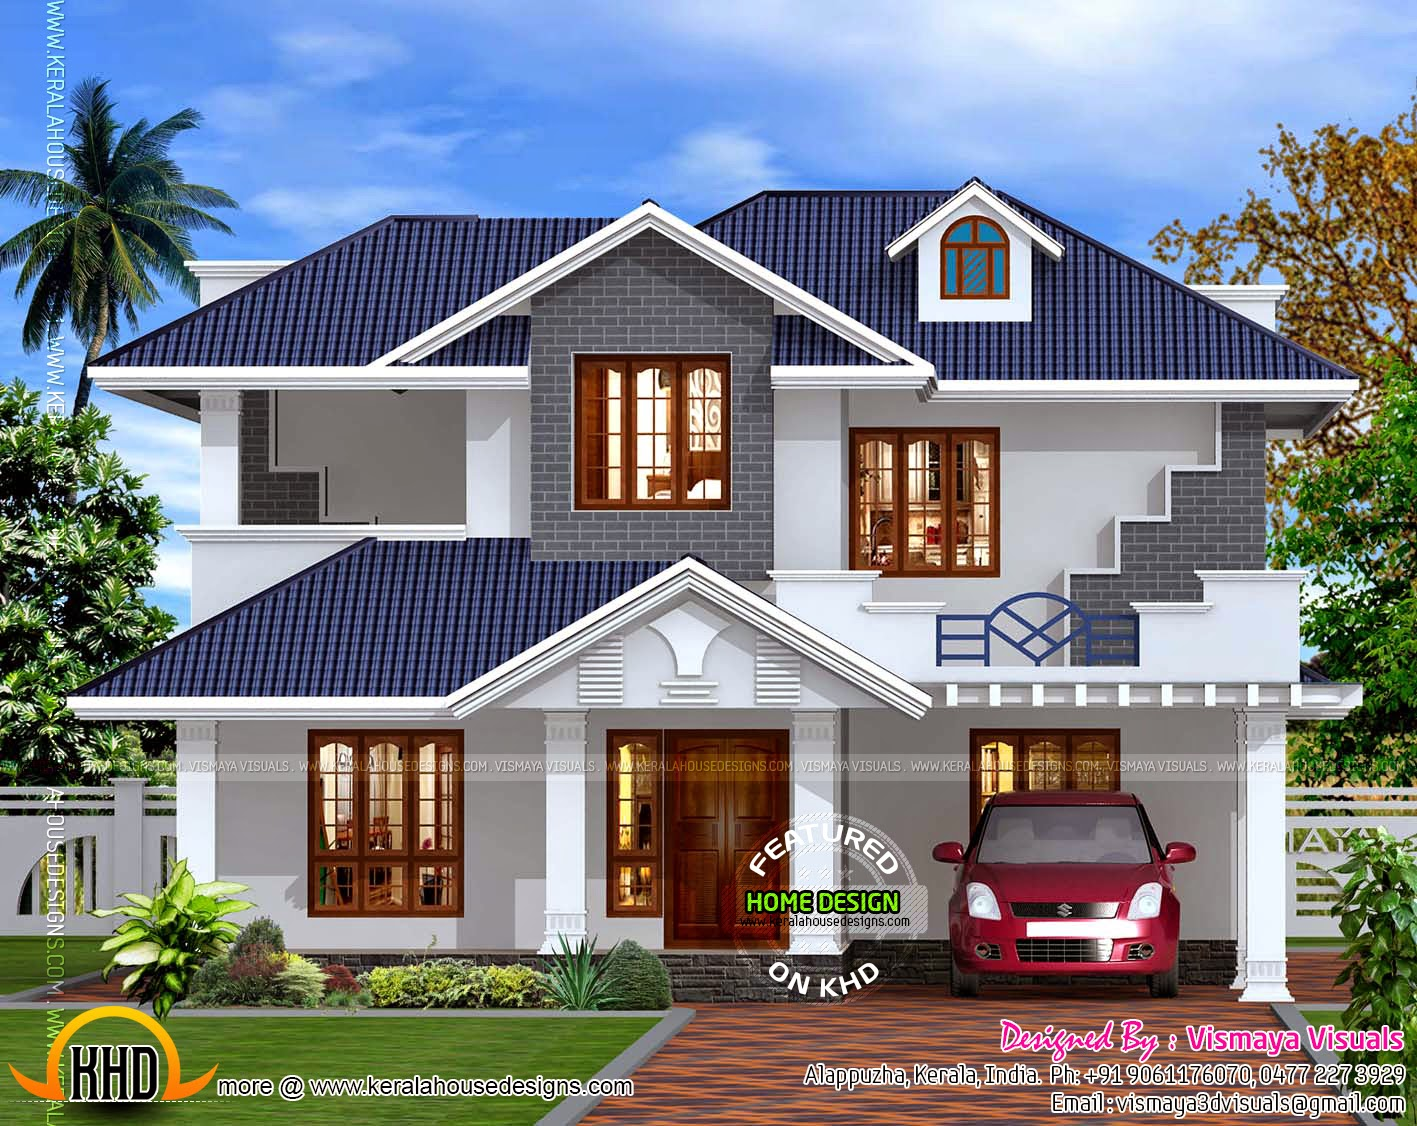 Kerala style villa exterior kerala home design and floor for Villas designs photos